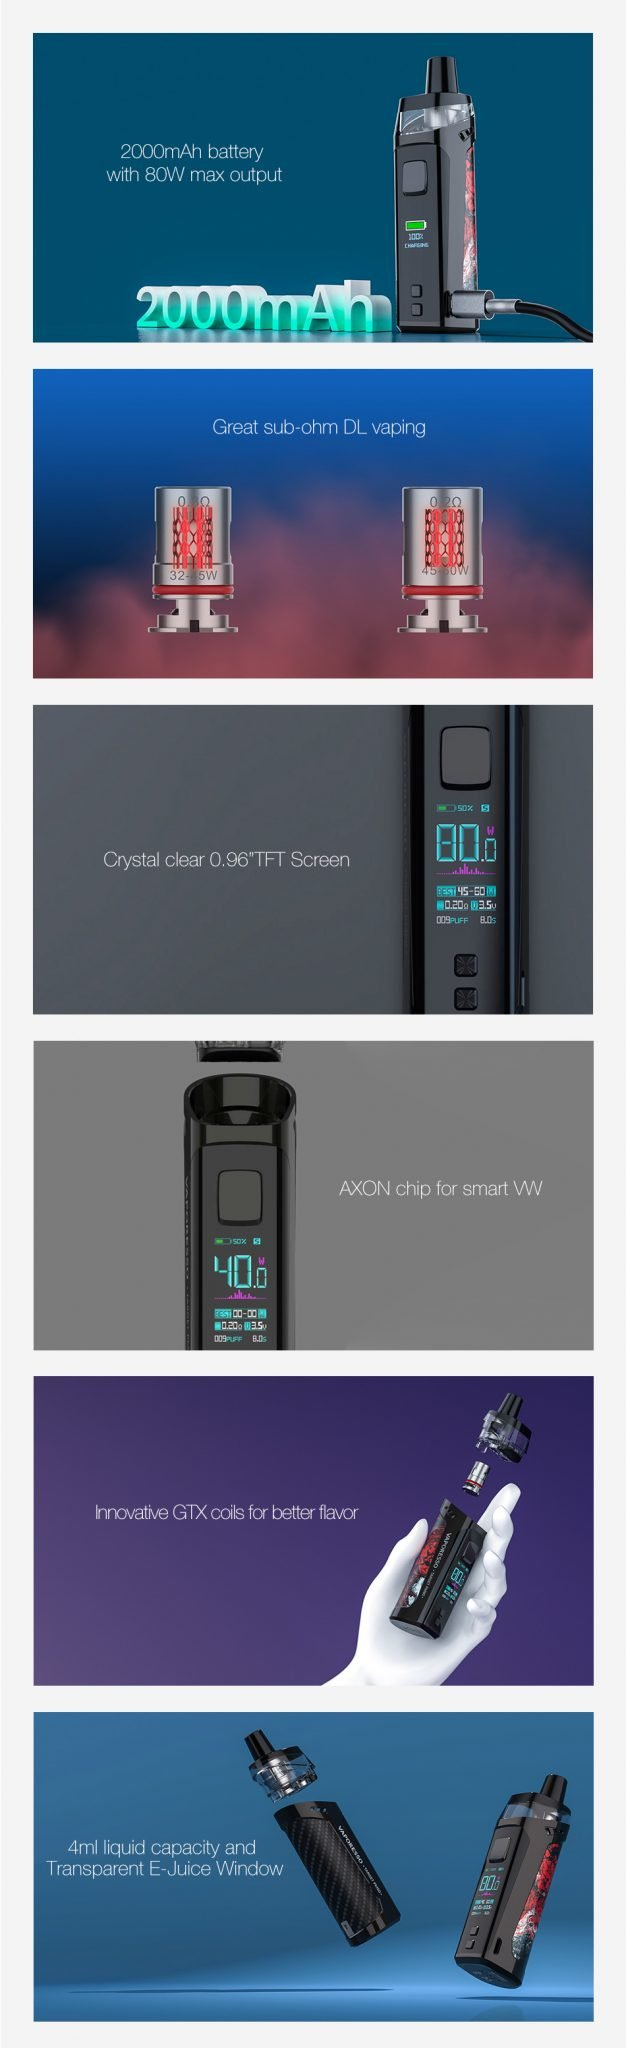 Vaporesso Target PM80 Kit Features UK